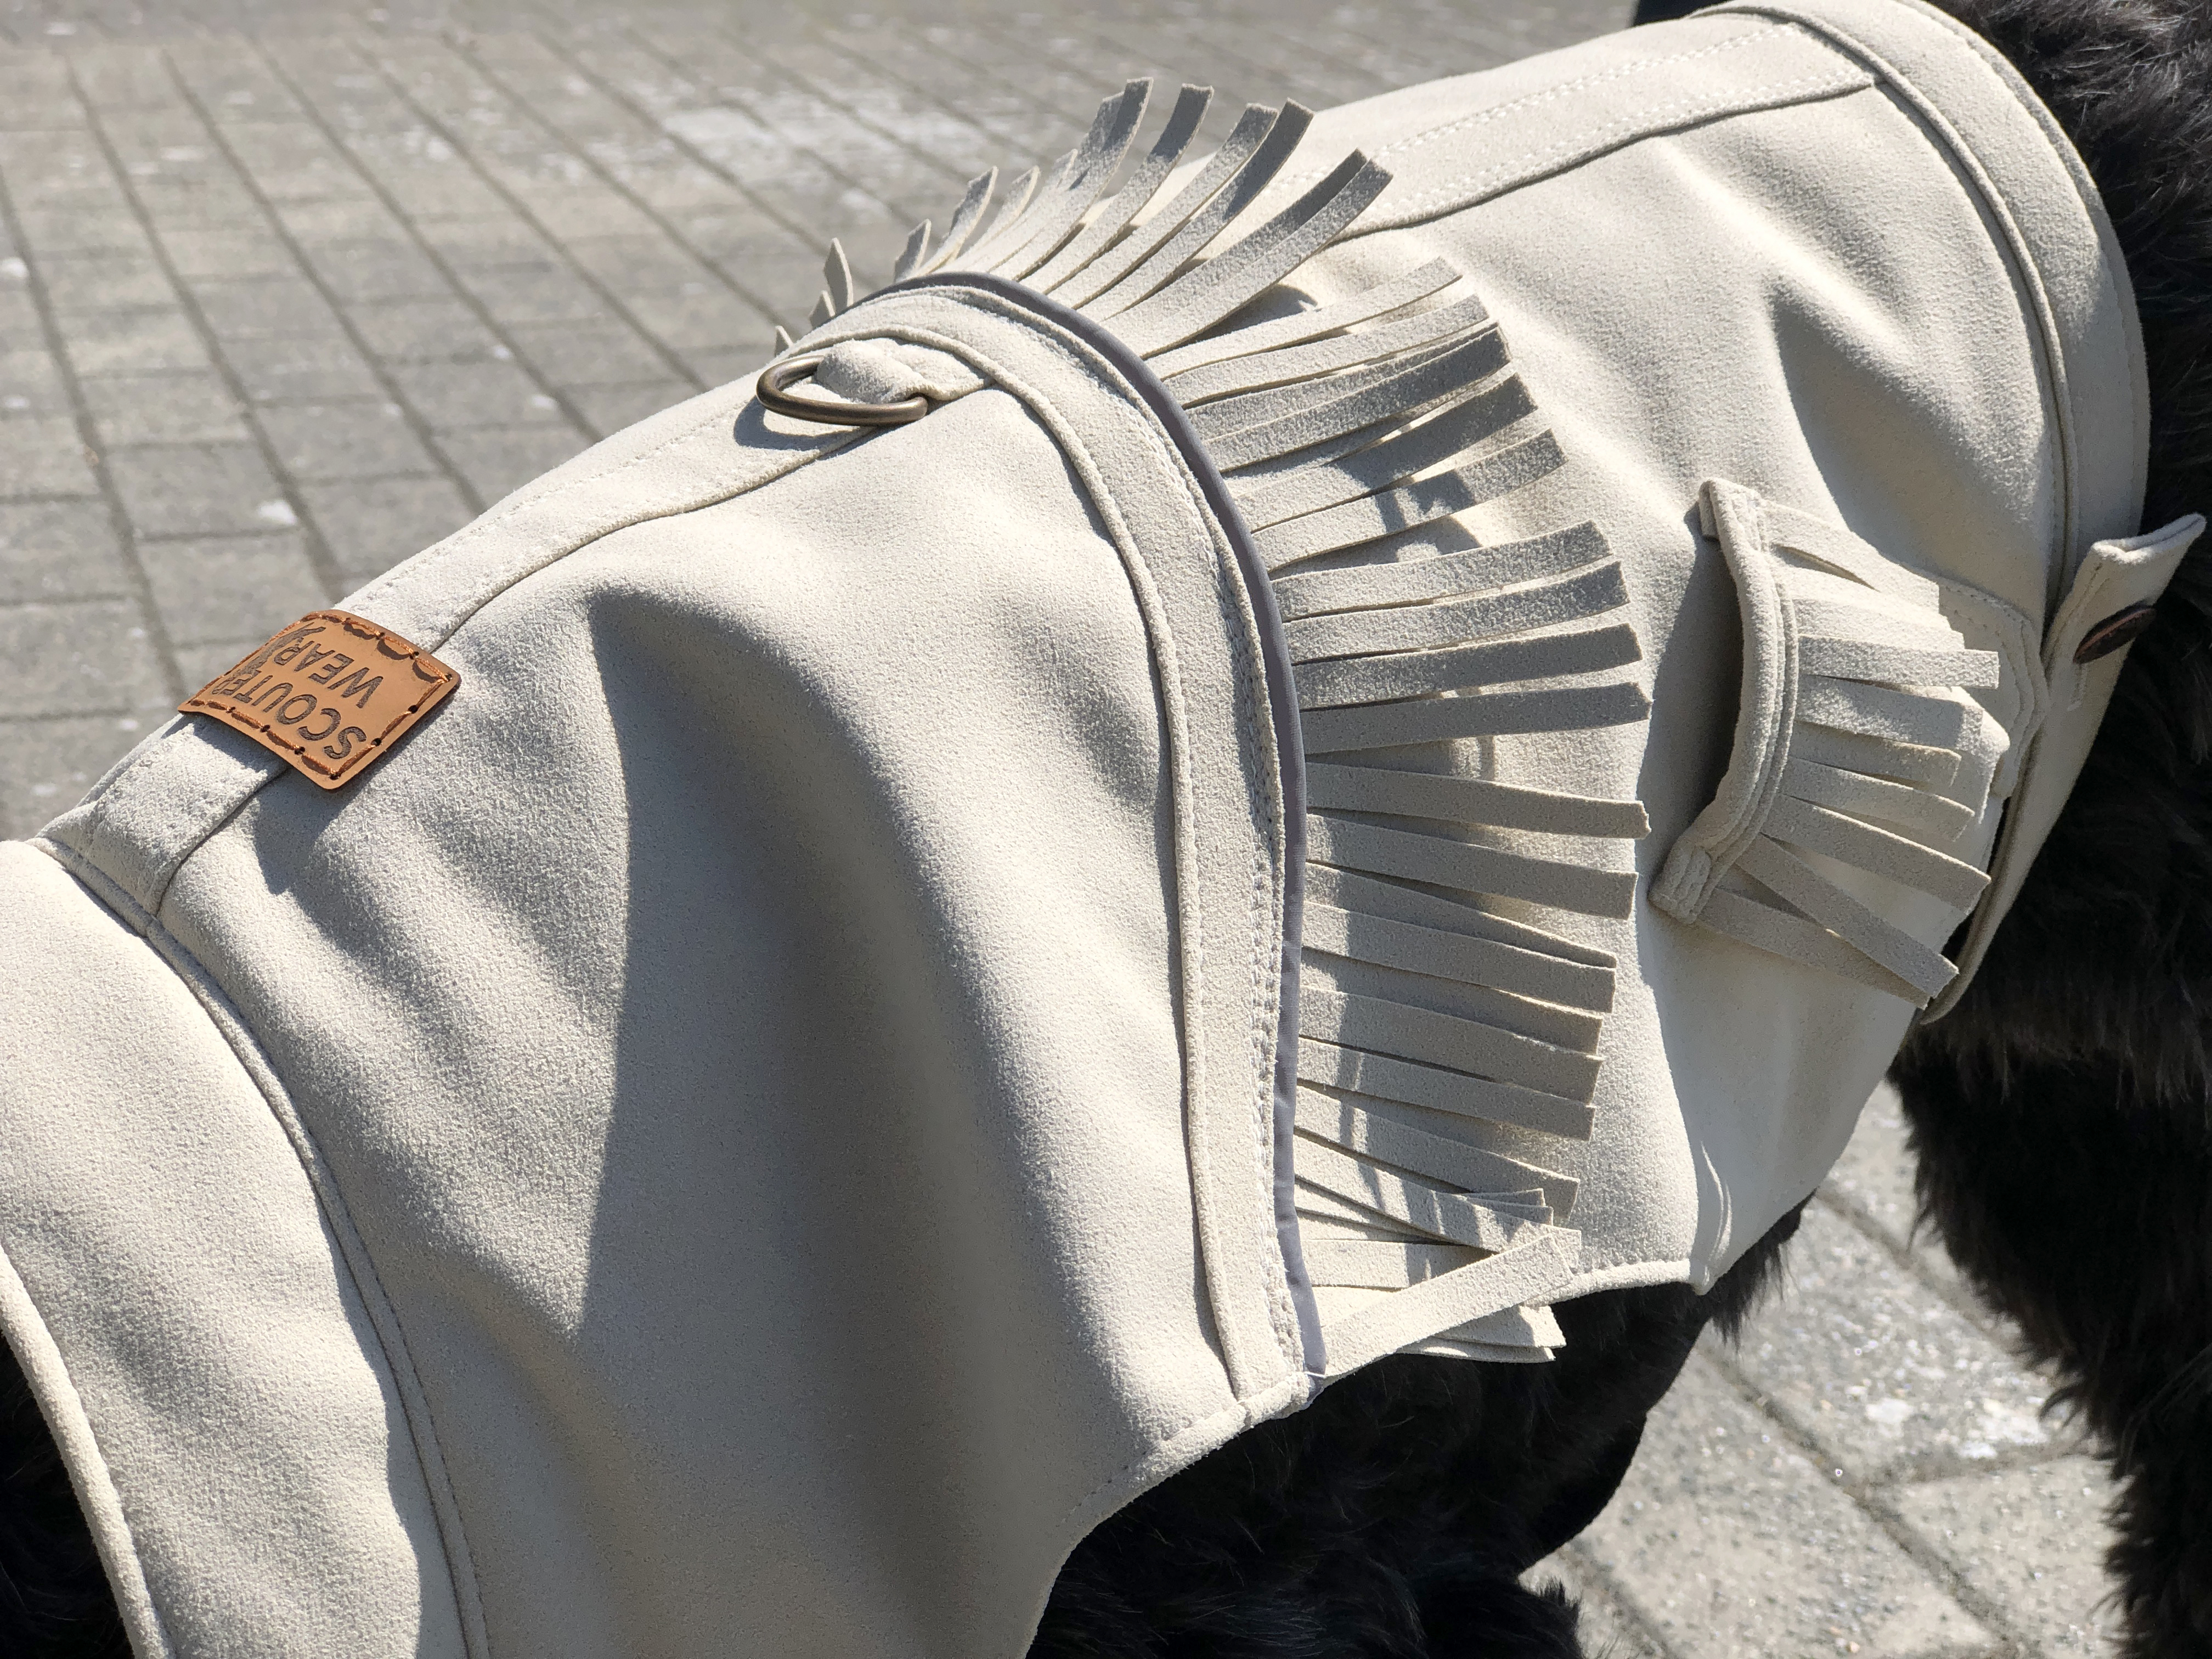 The Rawhide Vest and Harness